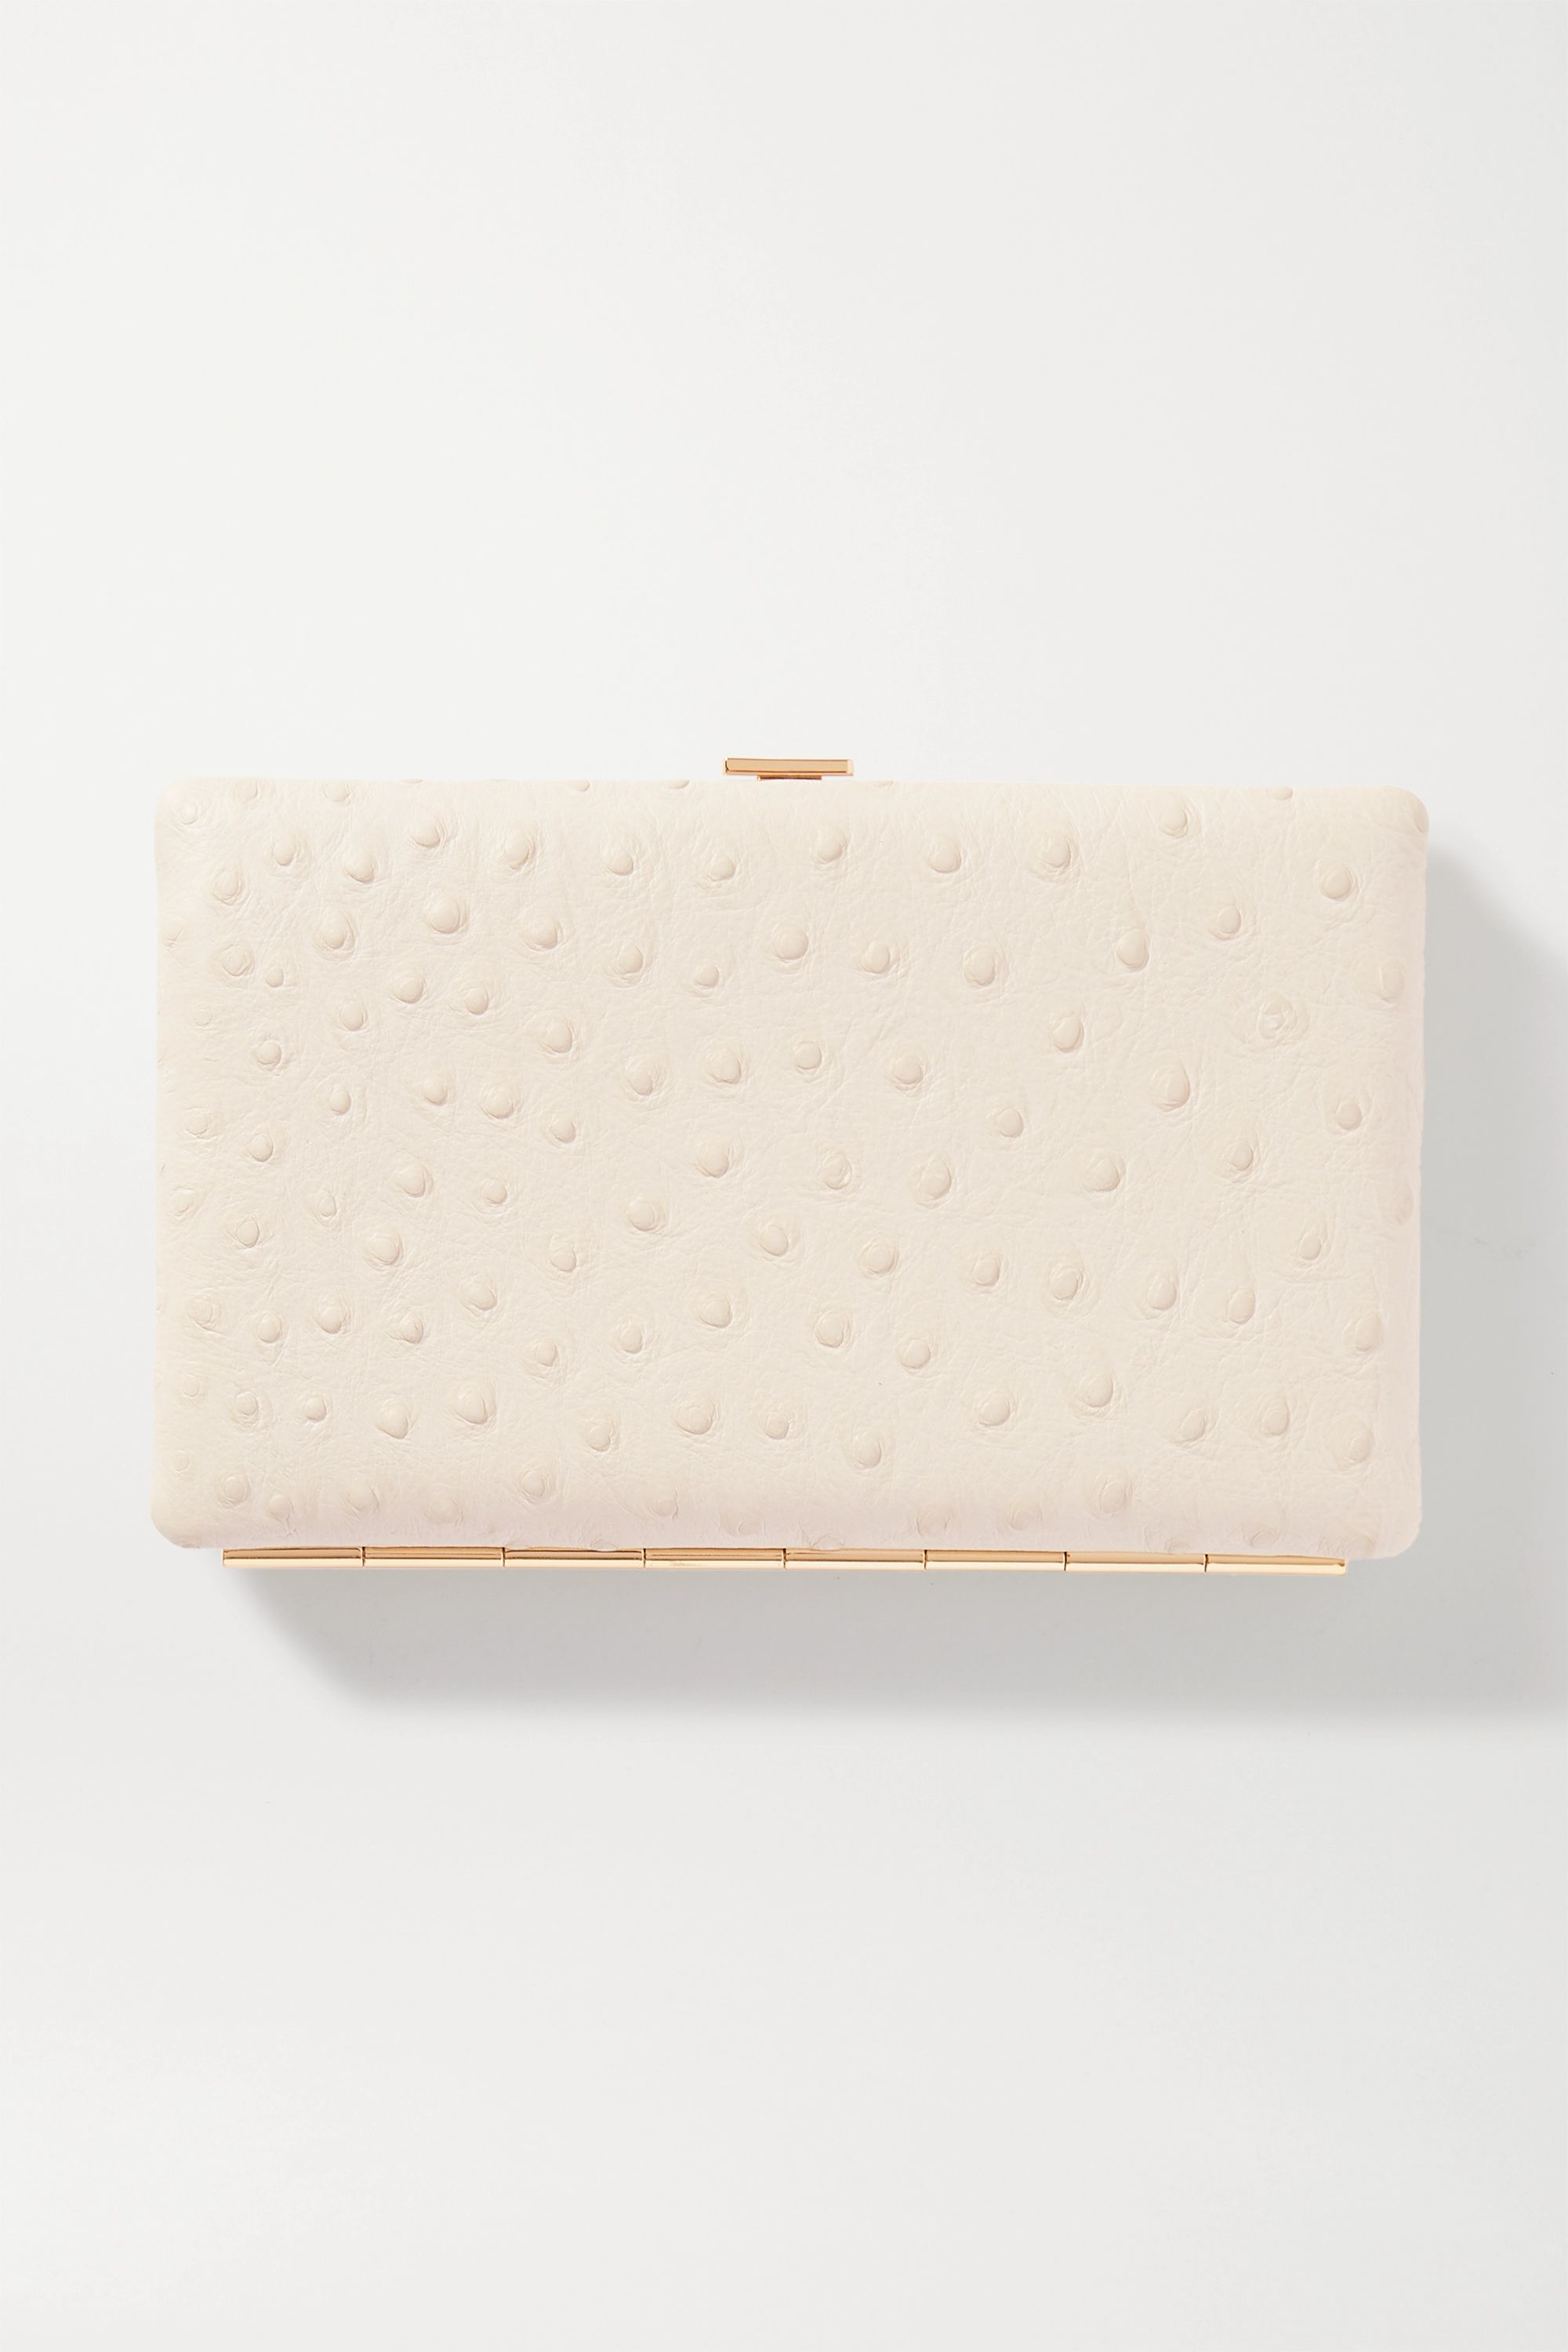 Anya Hindmarch Frame ostrich-effect leather wallet